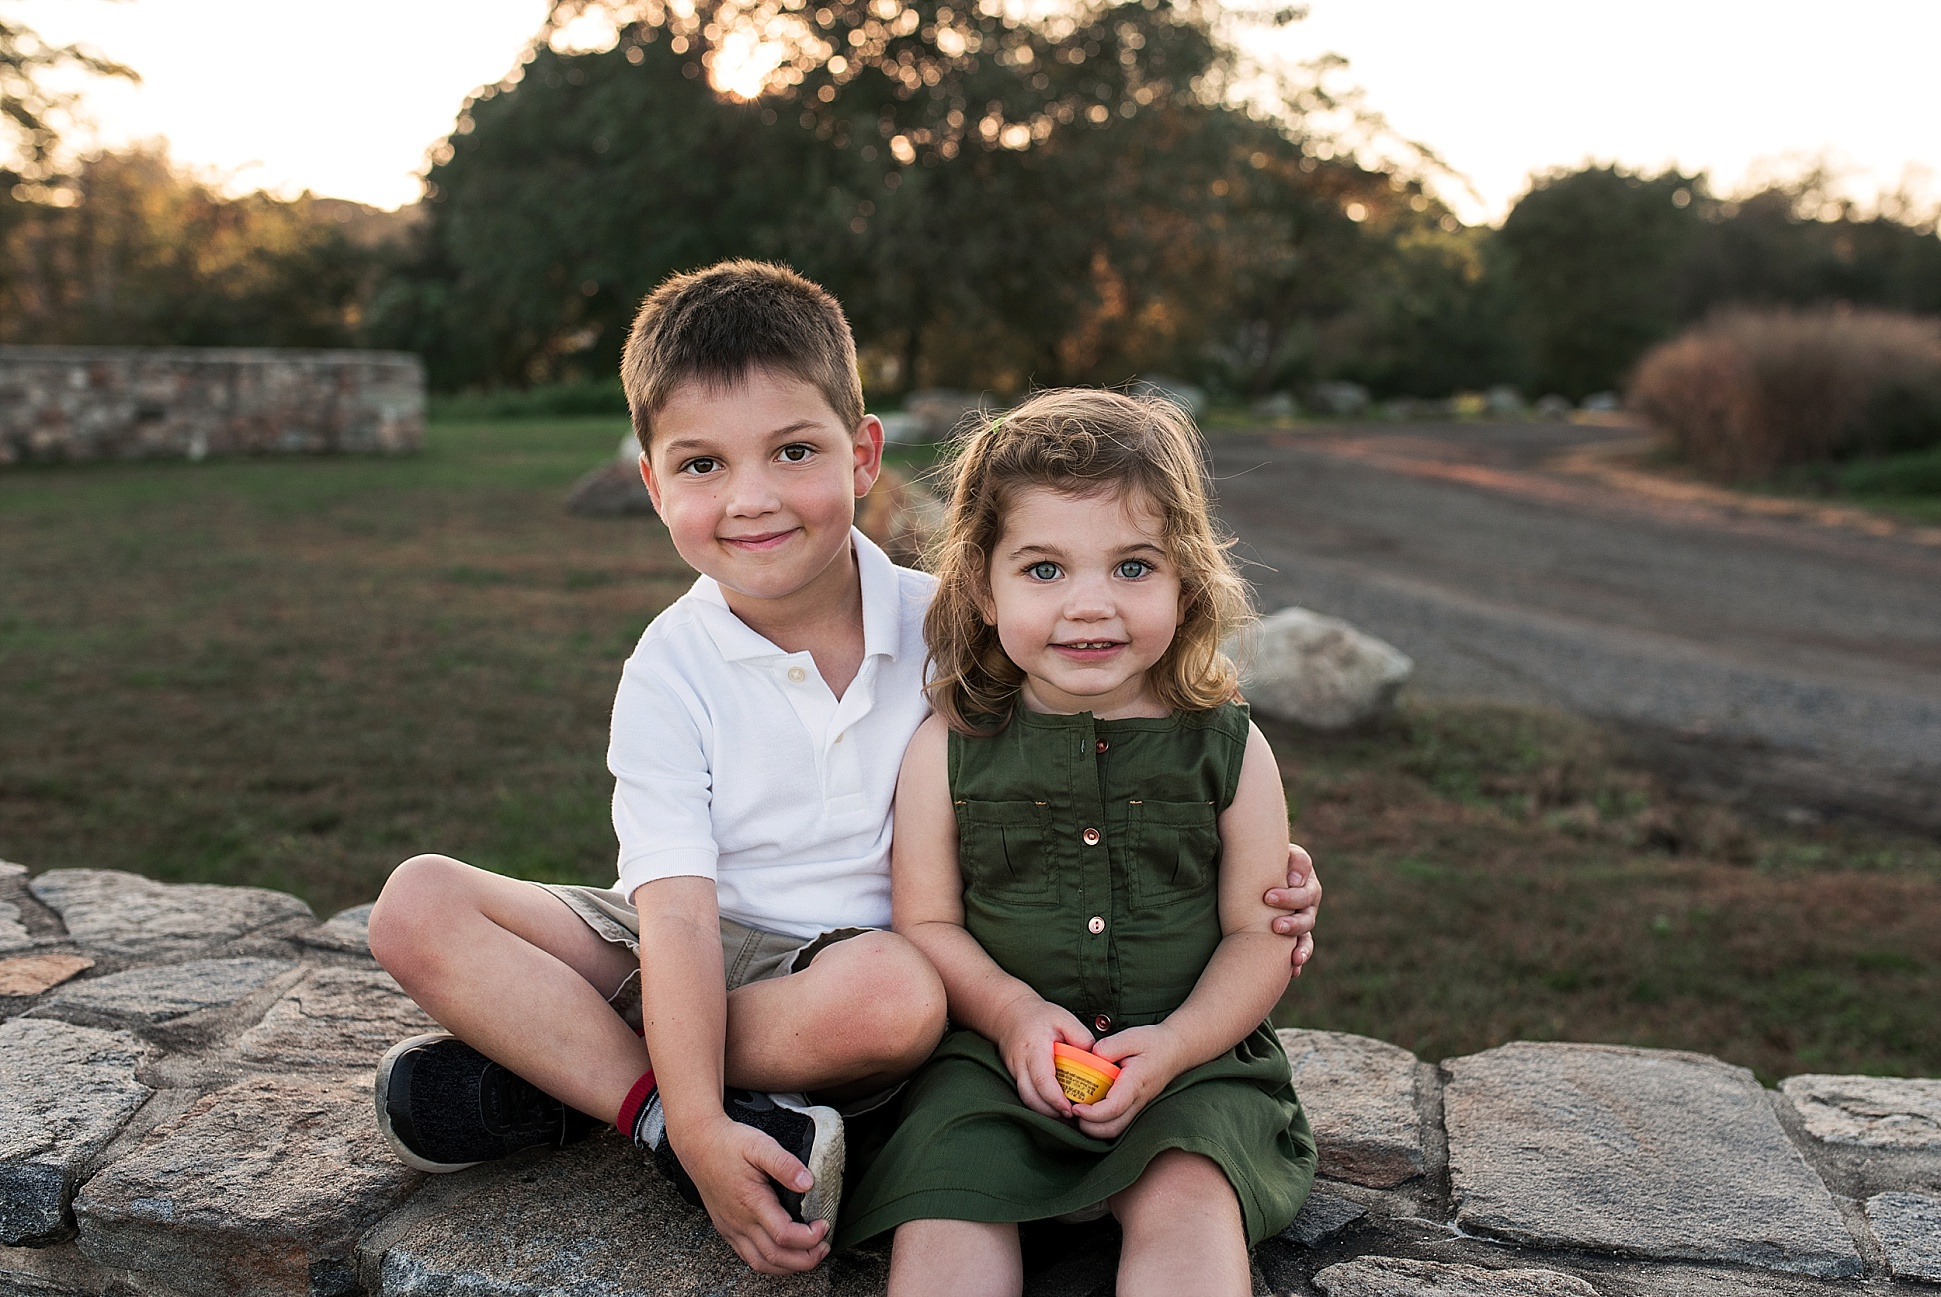 brother and sister photography session in middlesex county, ct